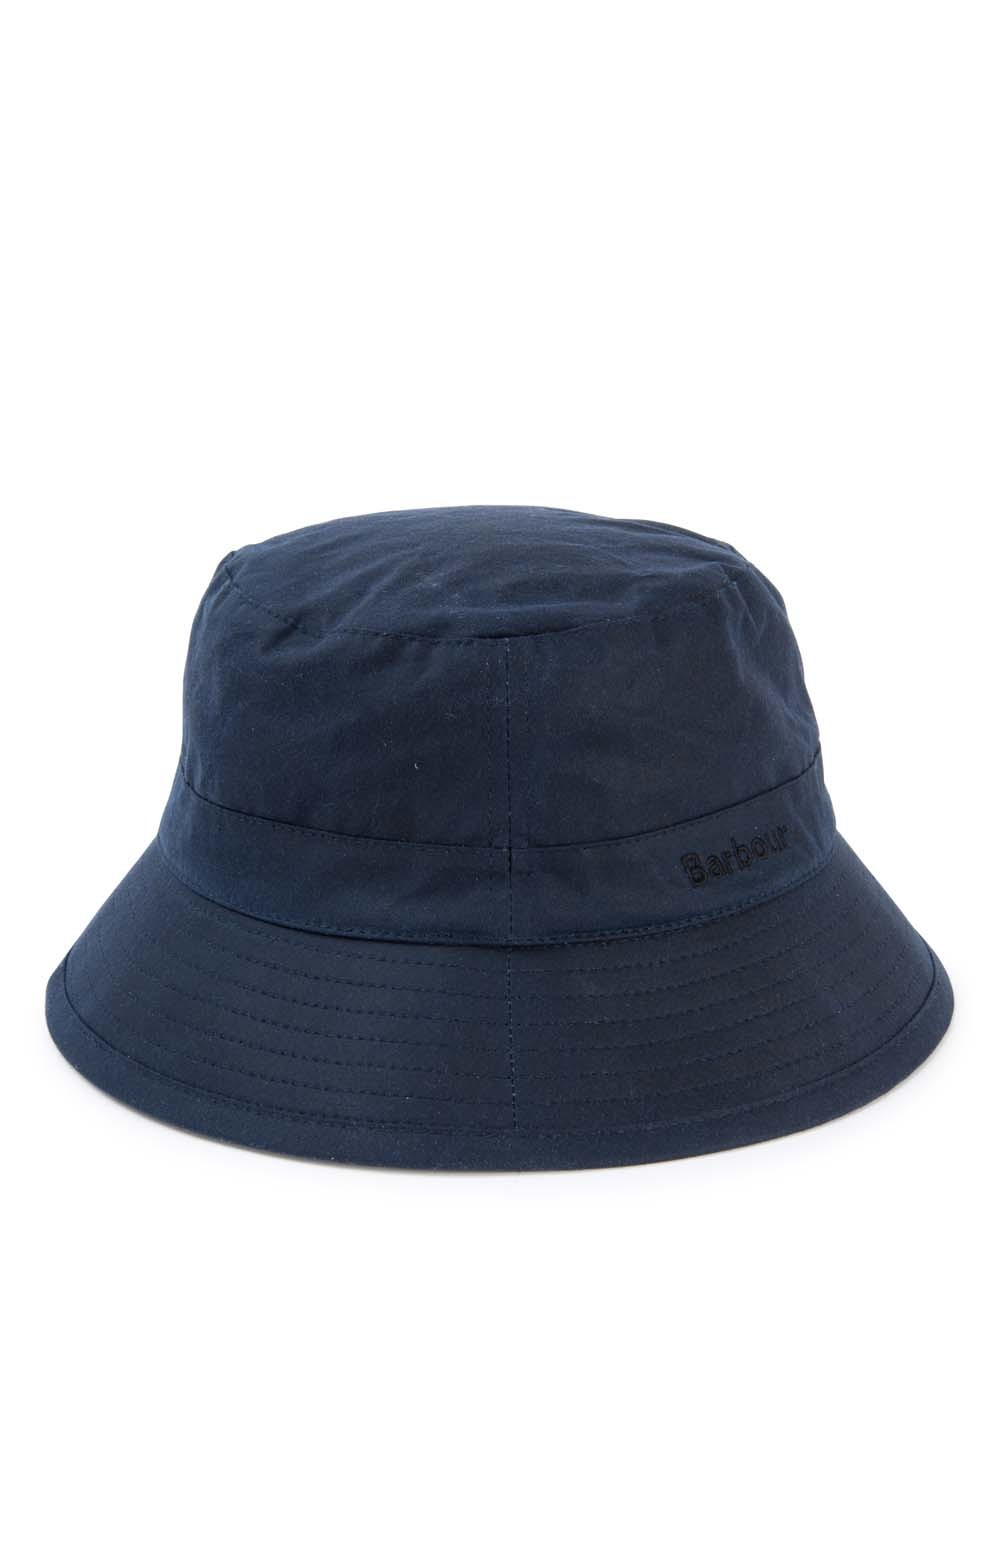 577bf0537bc6c Barbour Wax Sports Hat